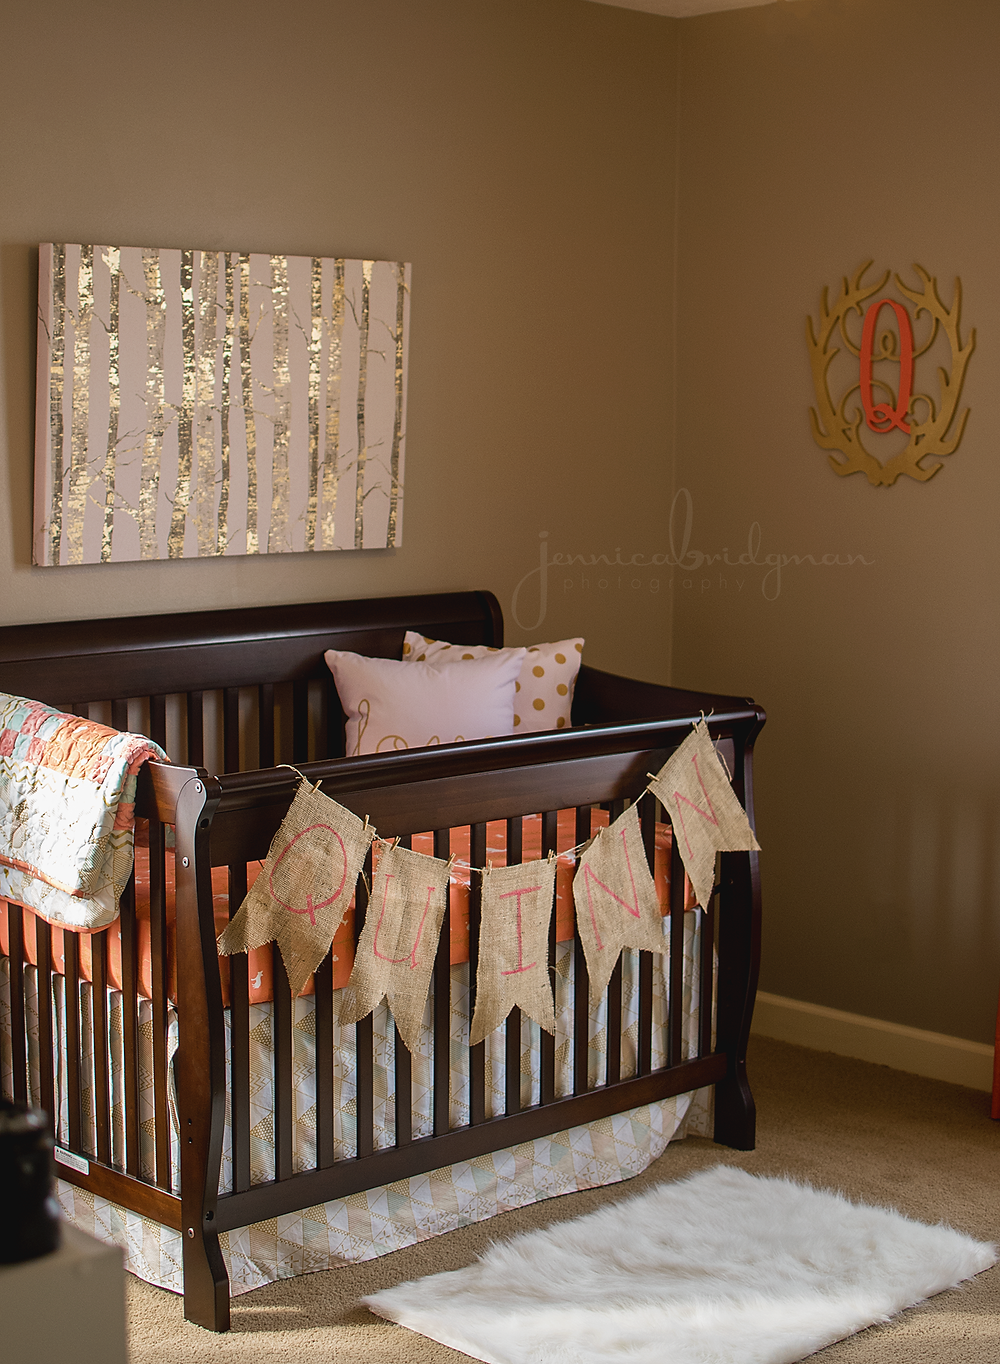 Lifestyle In-Home Maternity Session   Johnson Family   Conway, AR Maternity Photographer